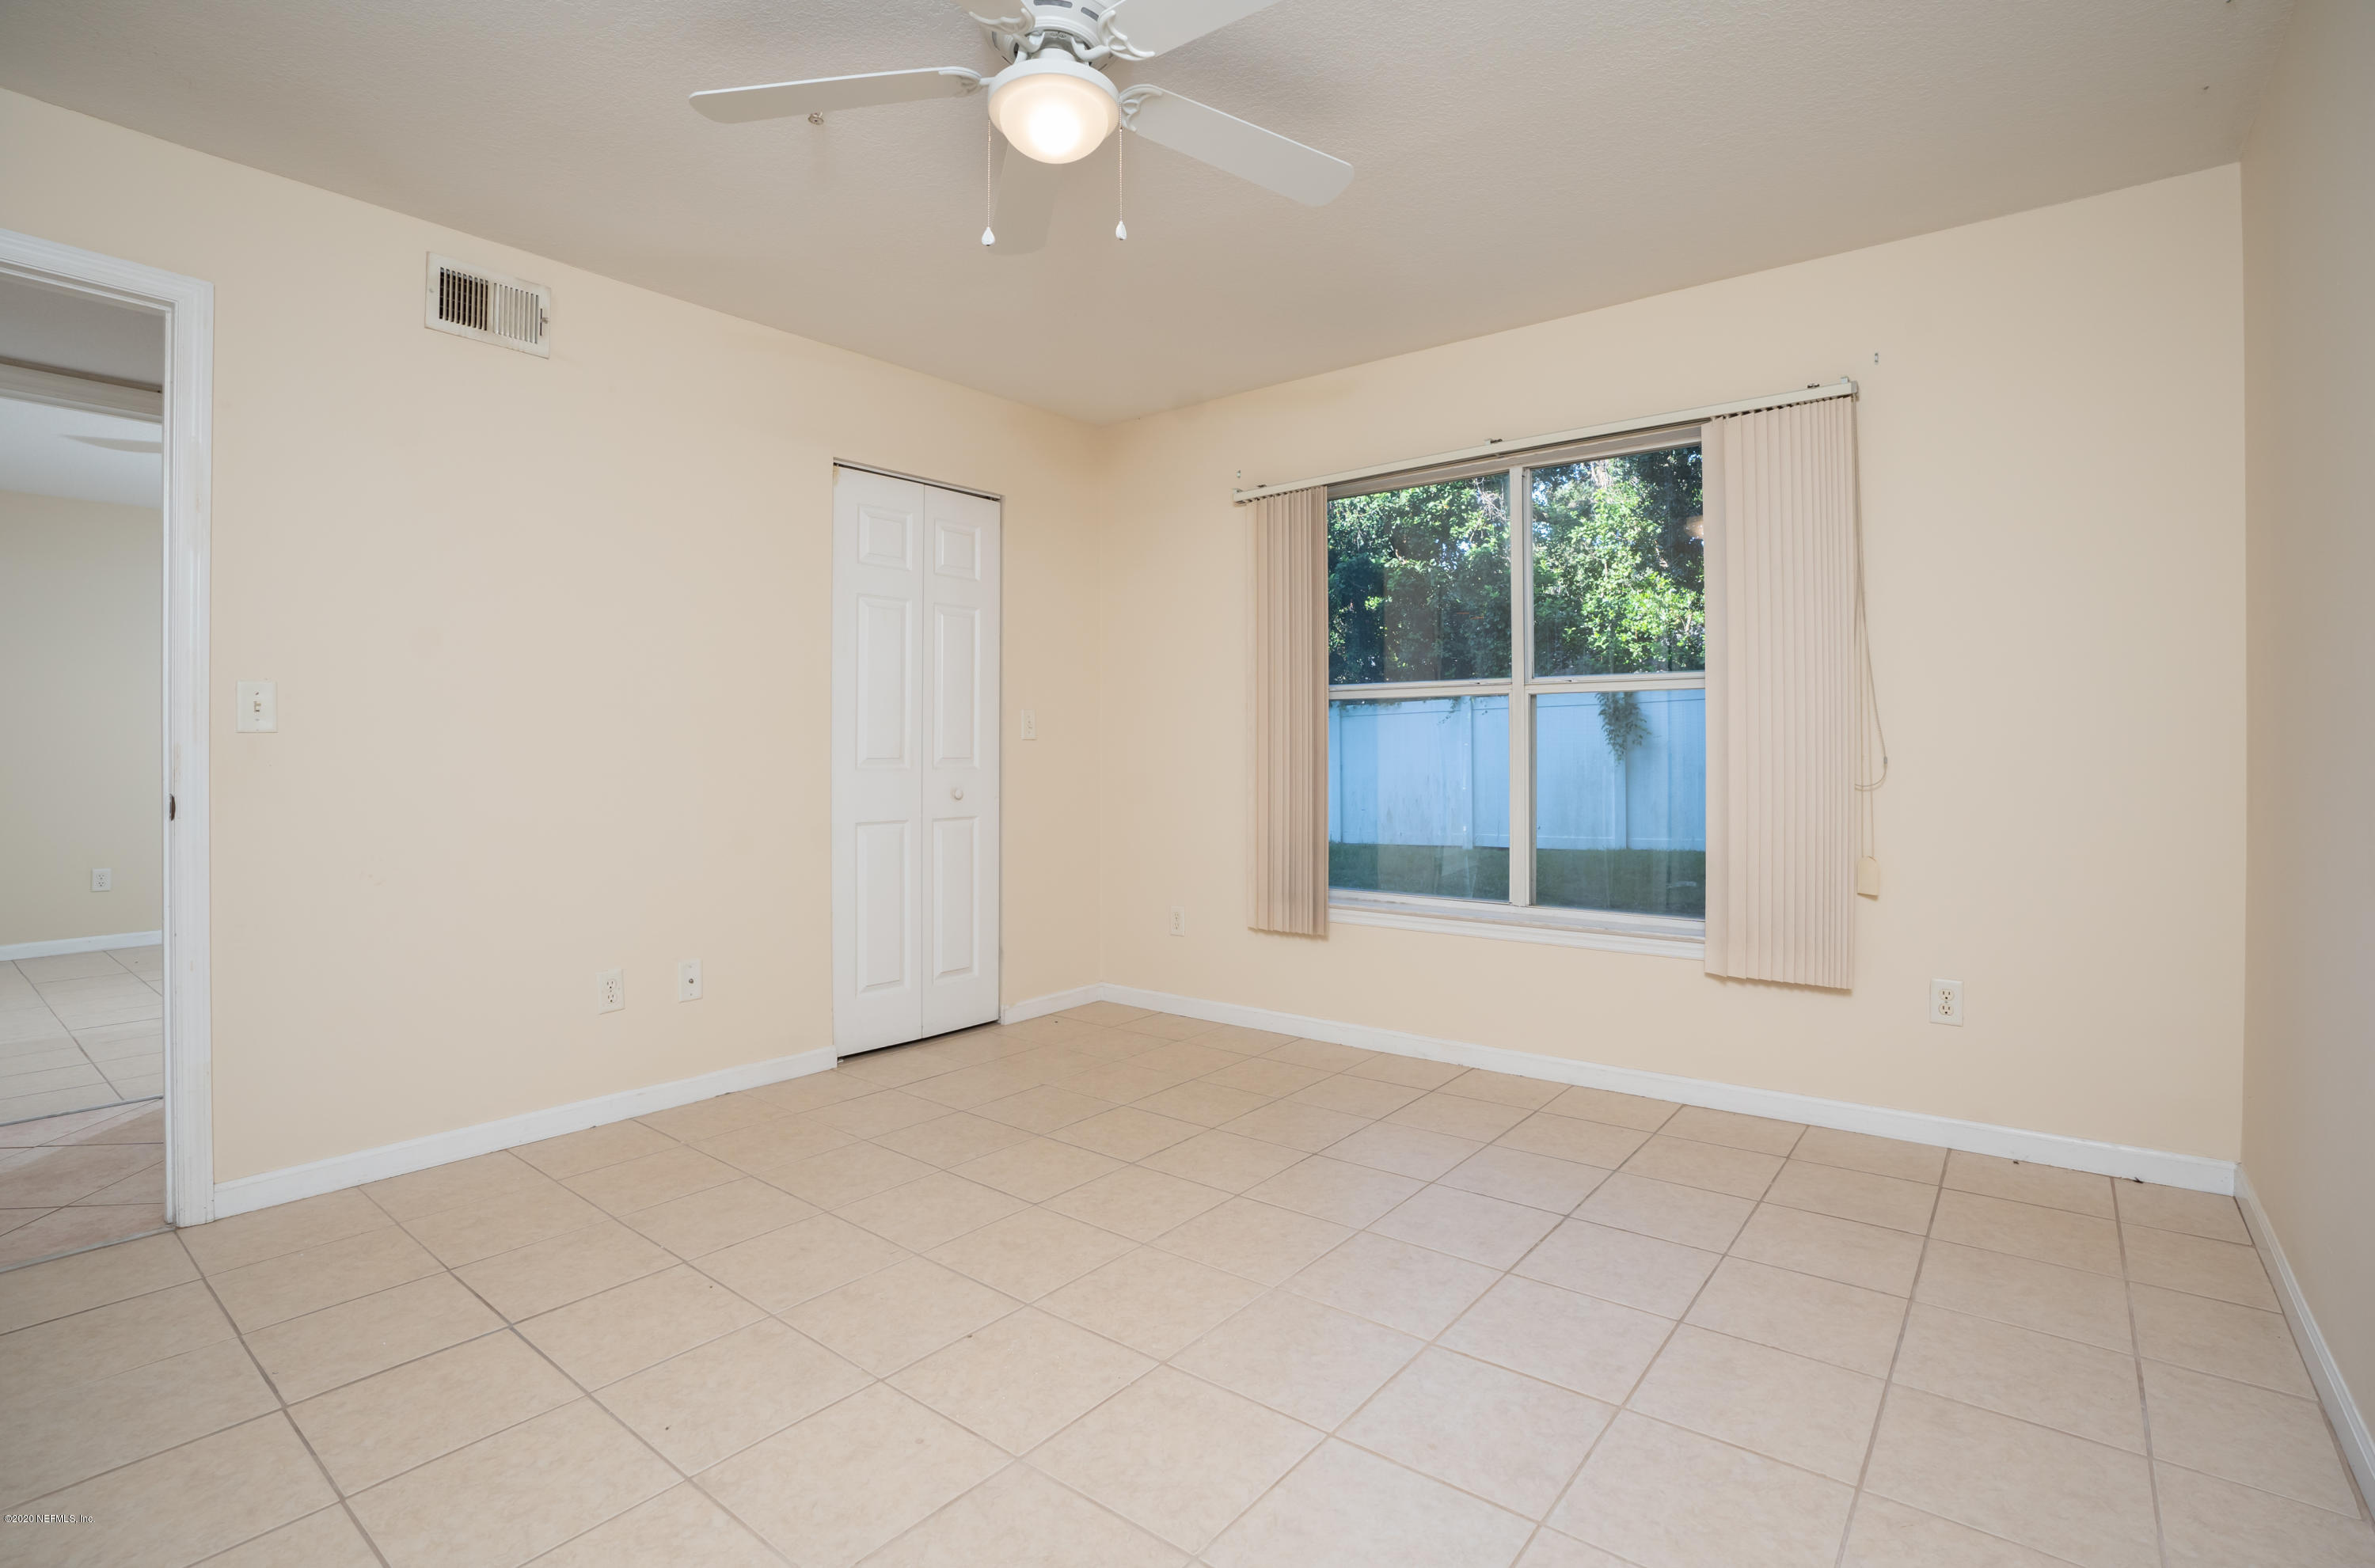 206 16TH, ST AUGUSTINE, FLORIDA 32080, 2 Bedrooms Bedrooms, ,2 BathroomsBathrooms,Condo,For sale,16TH,1010902